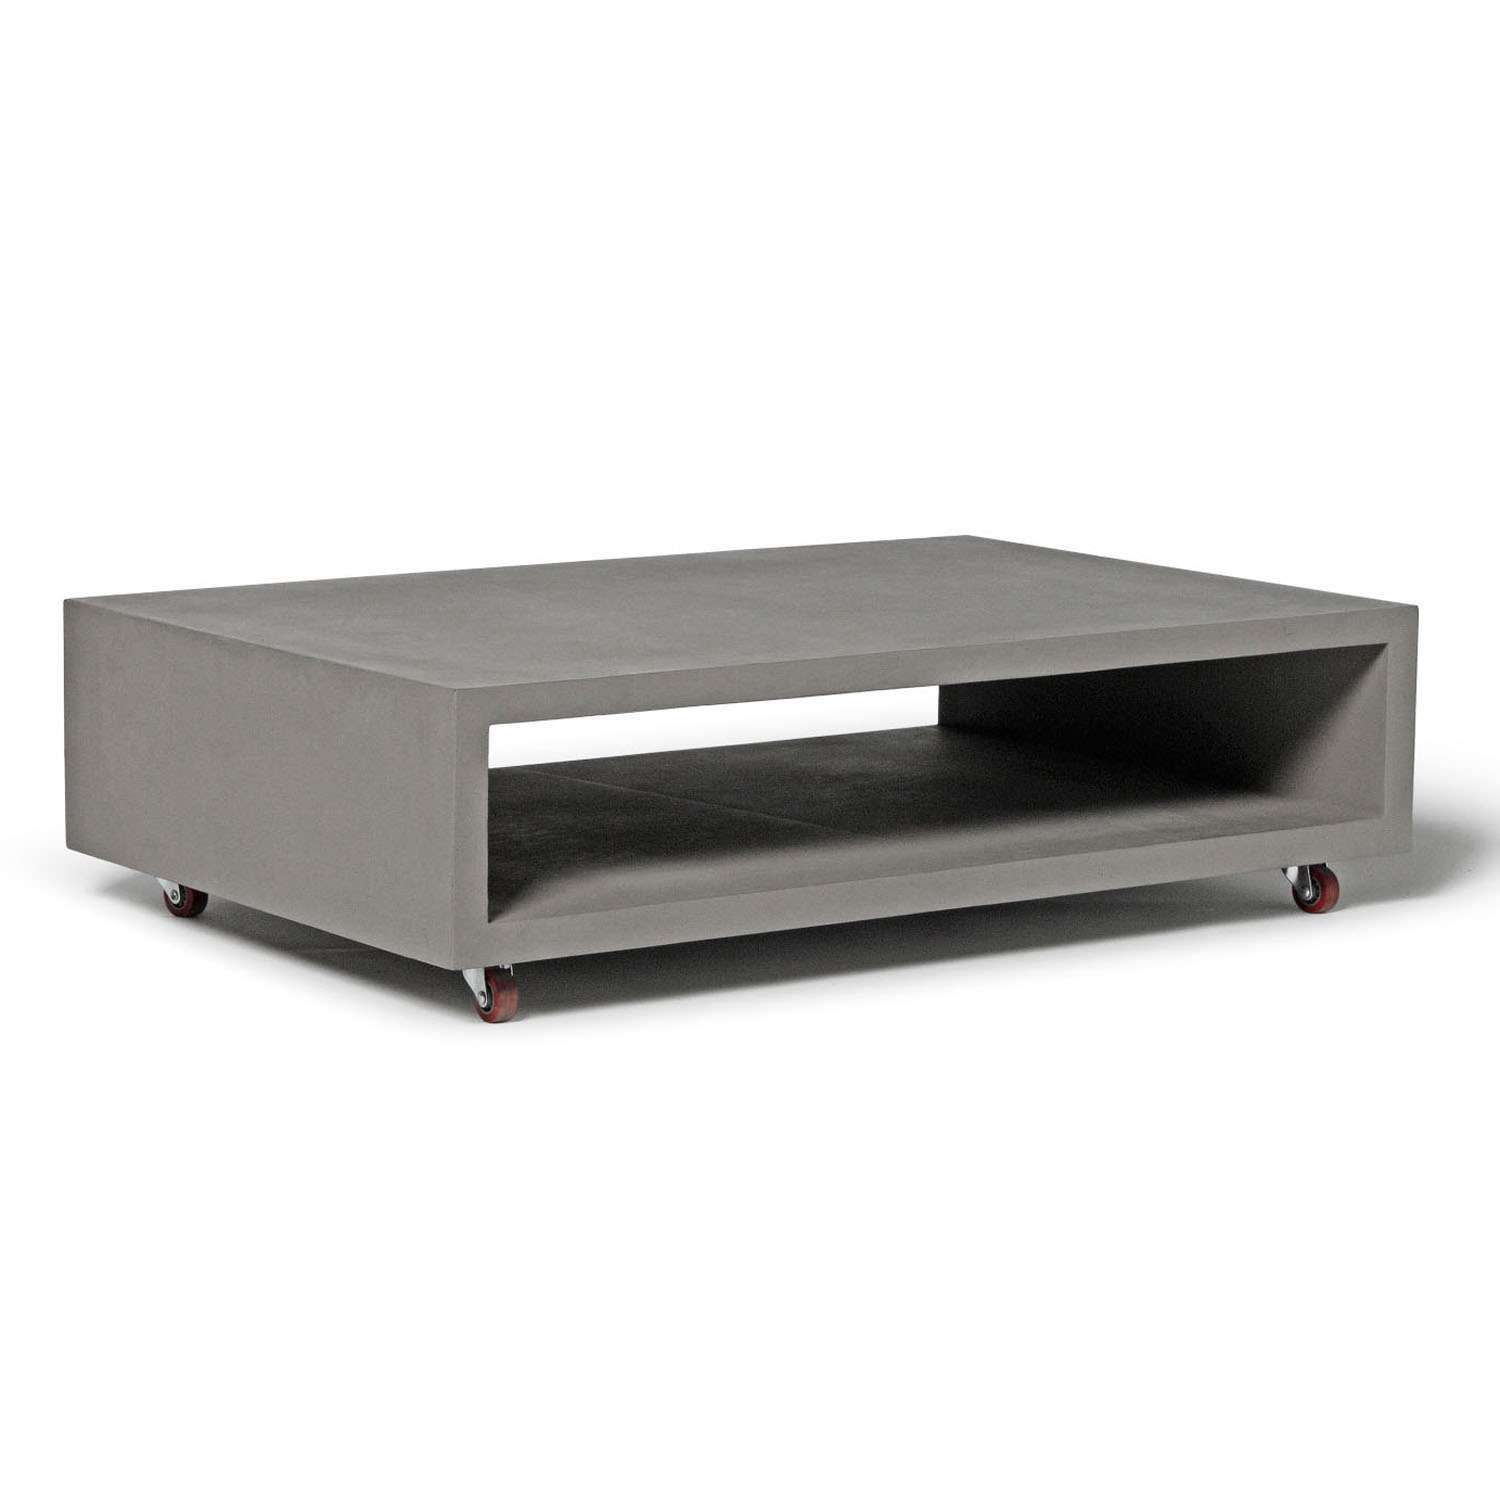 Couchtisch Monobloc Xl Monobloc Rectangular Coffee Table With Wheels My House